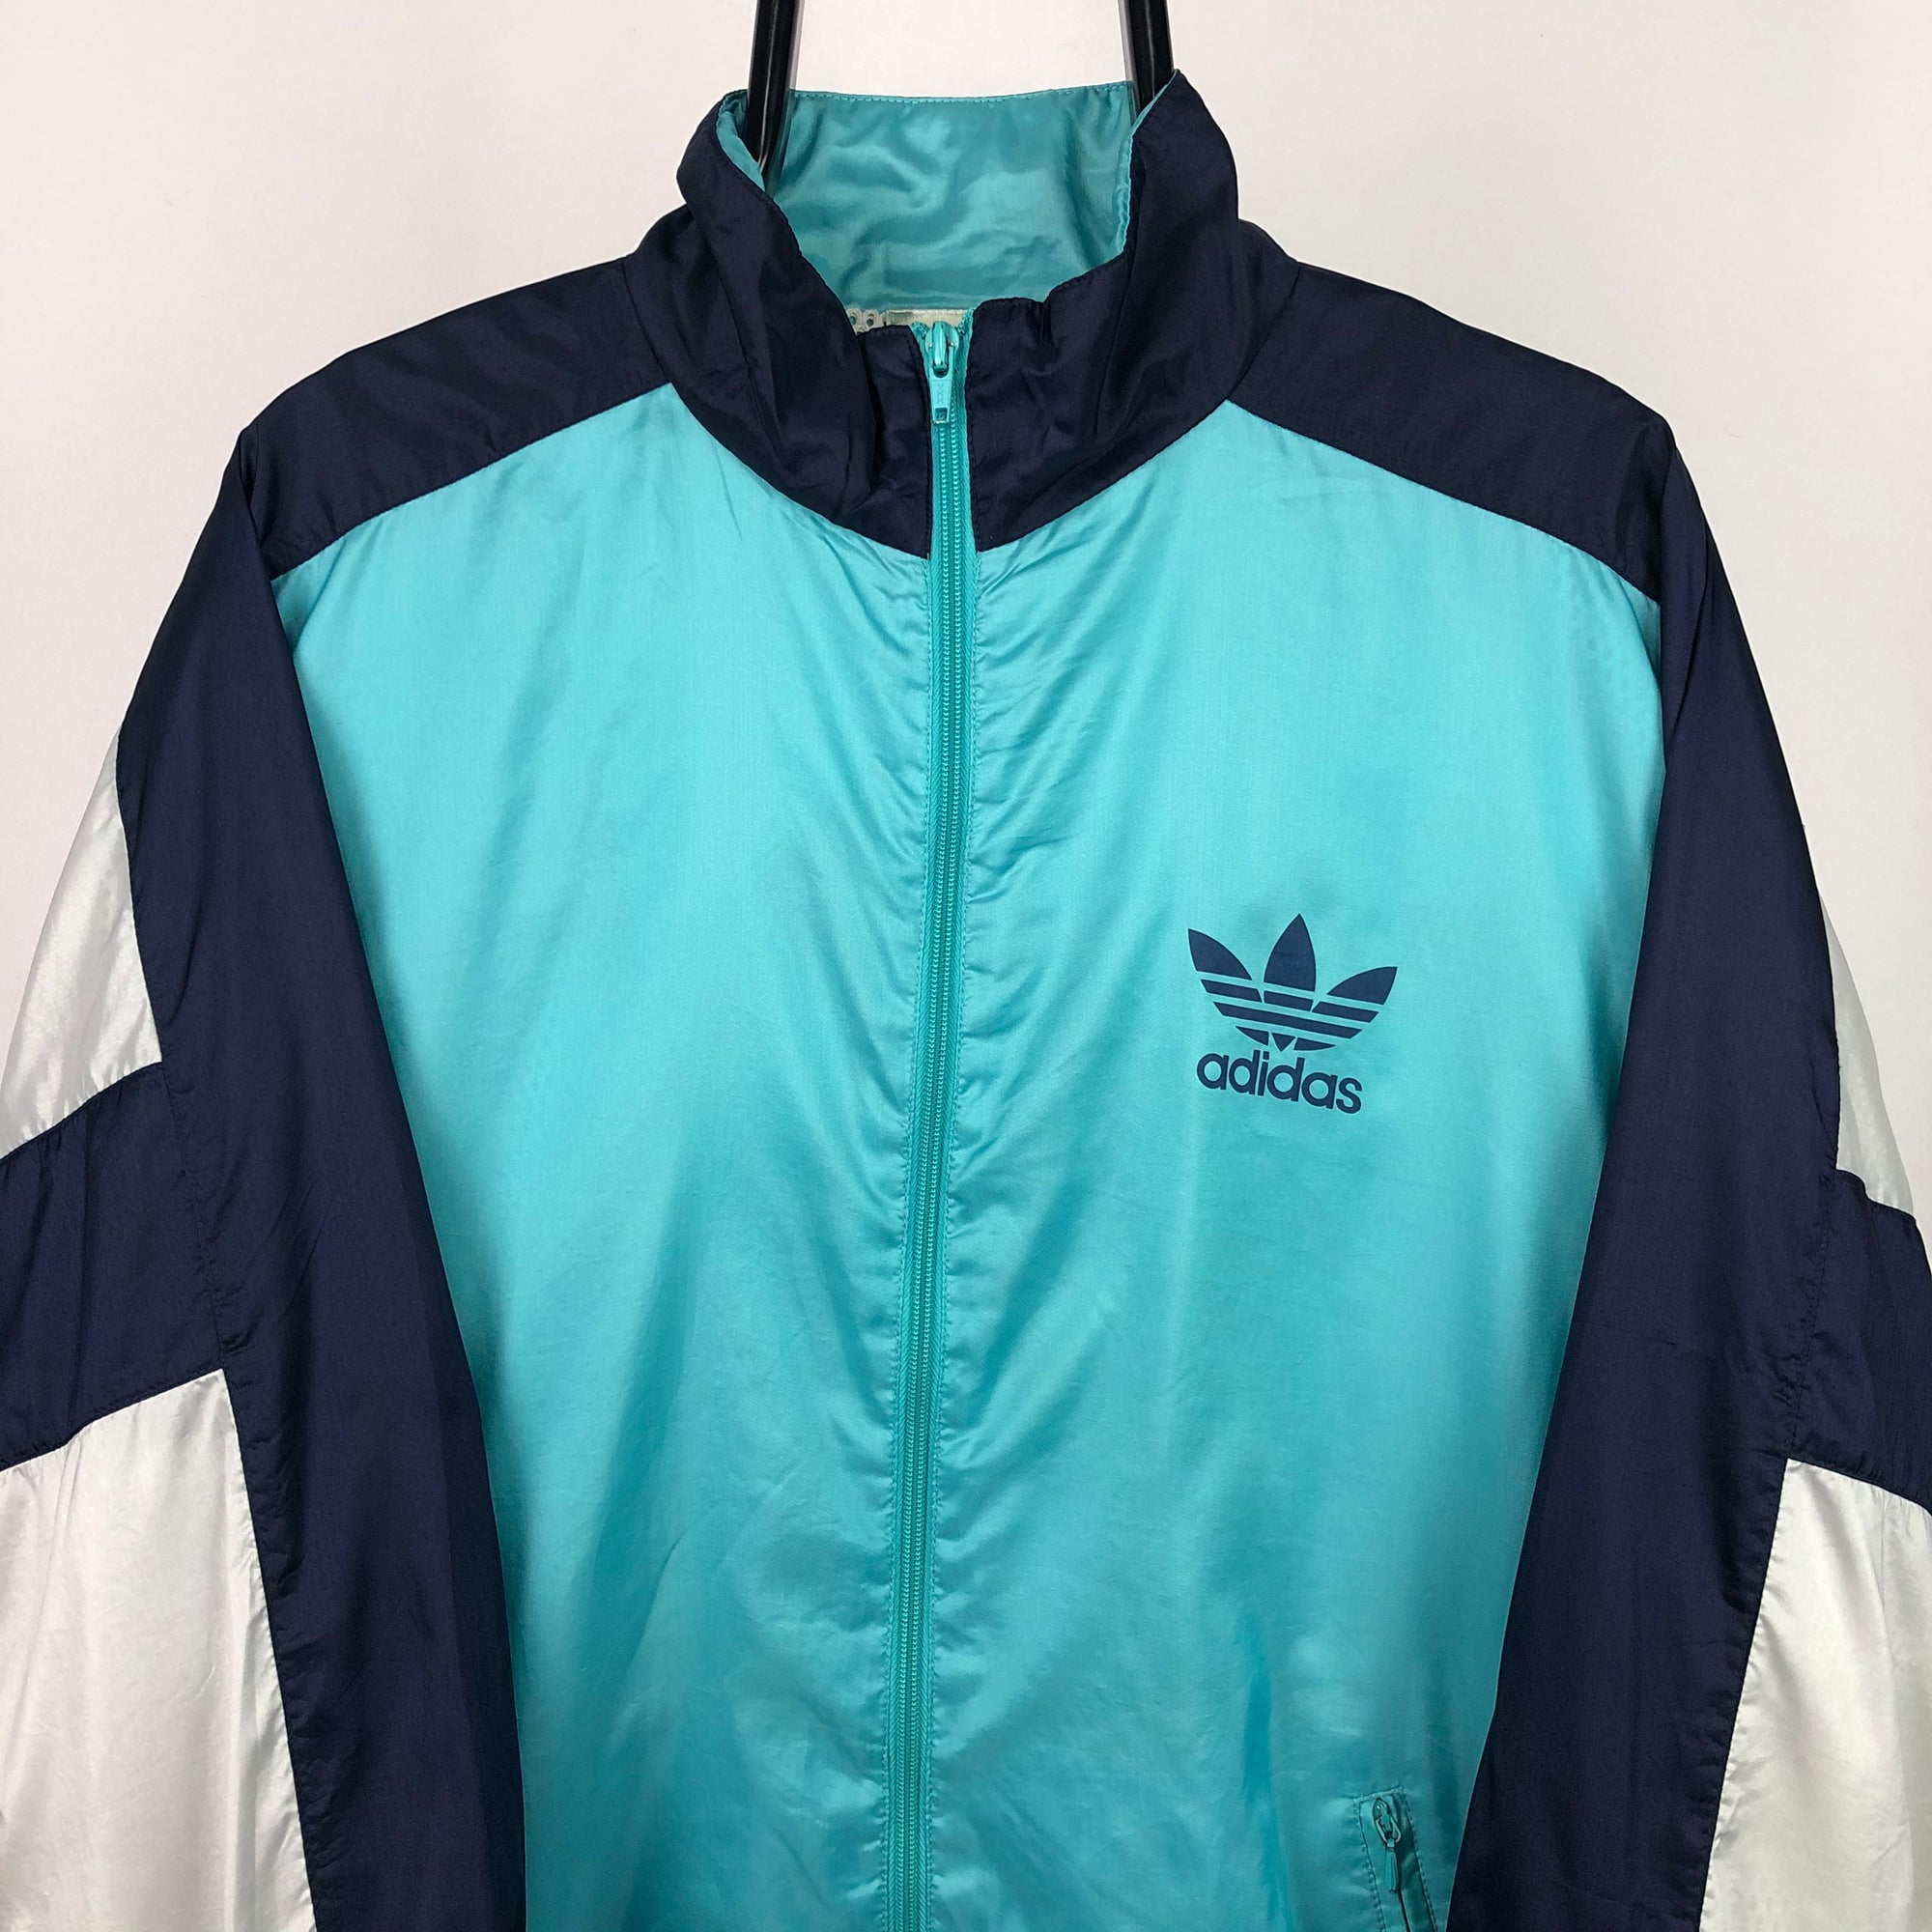 Vintage 90s Adidas Track Jacket in Turquoise/Navy/White - Men's Large/Women's XL